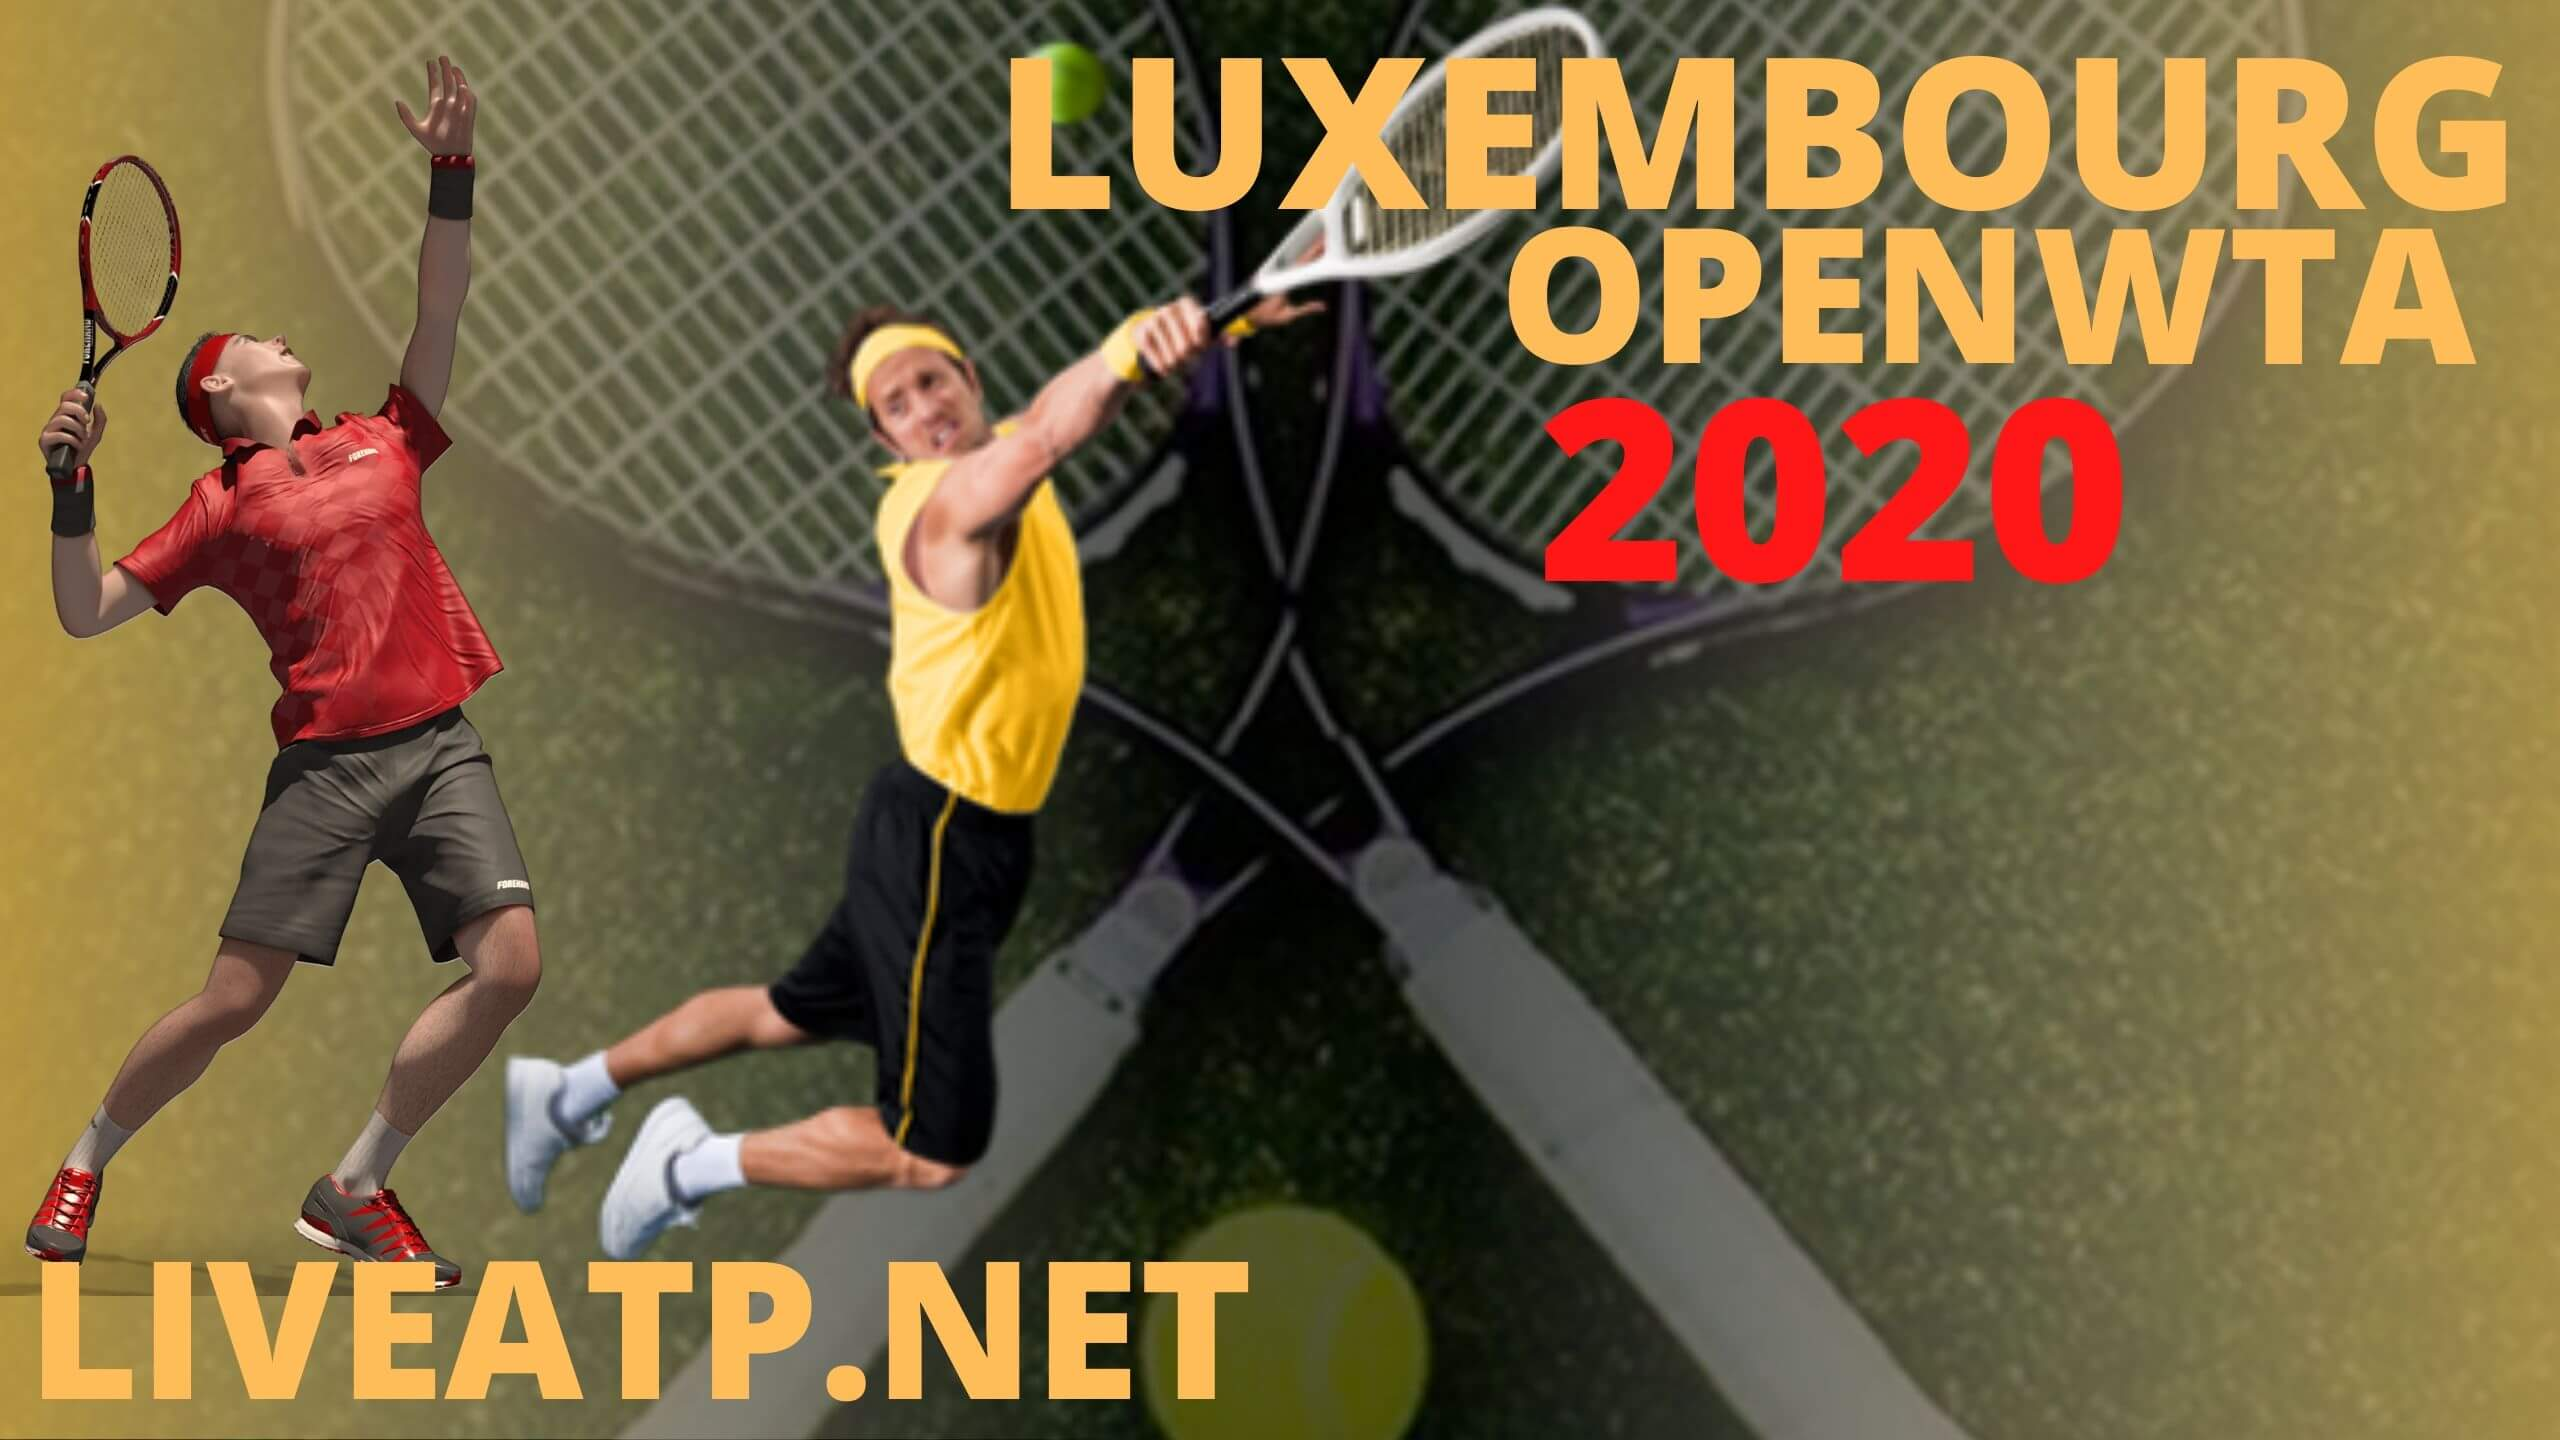 Luxembourg Open Live Stream 2020 | Day 3